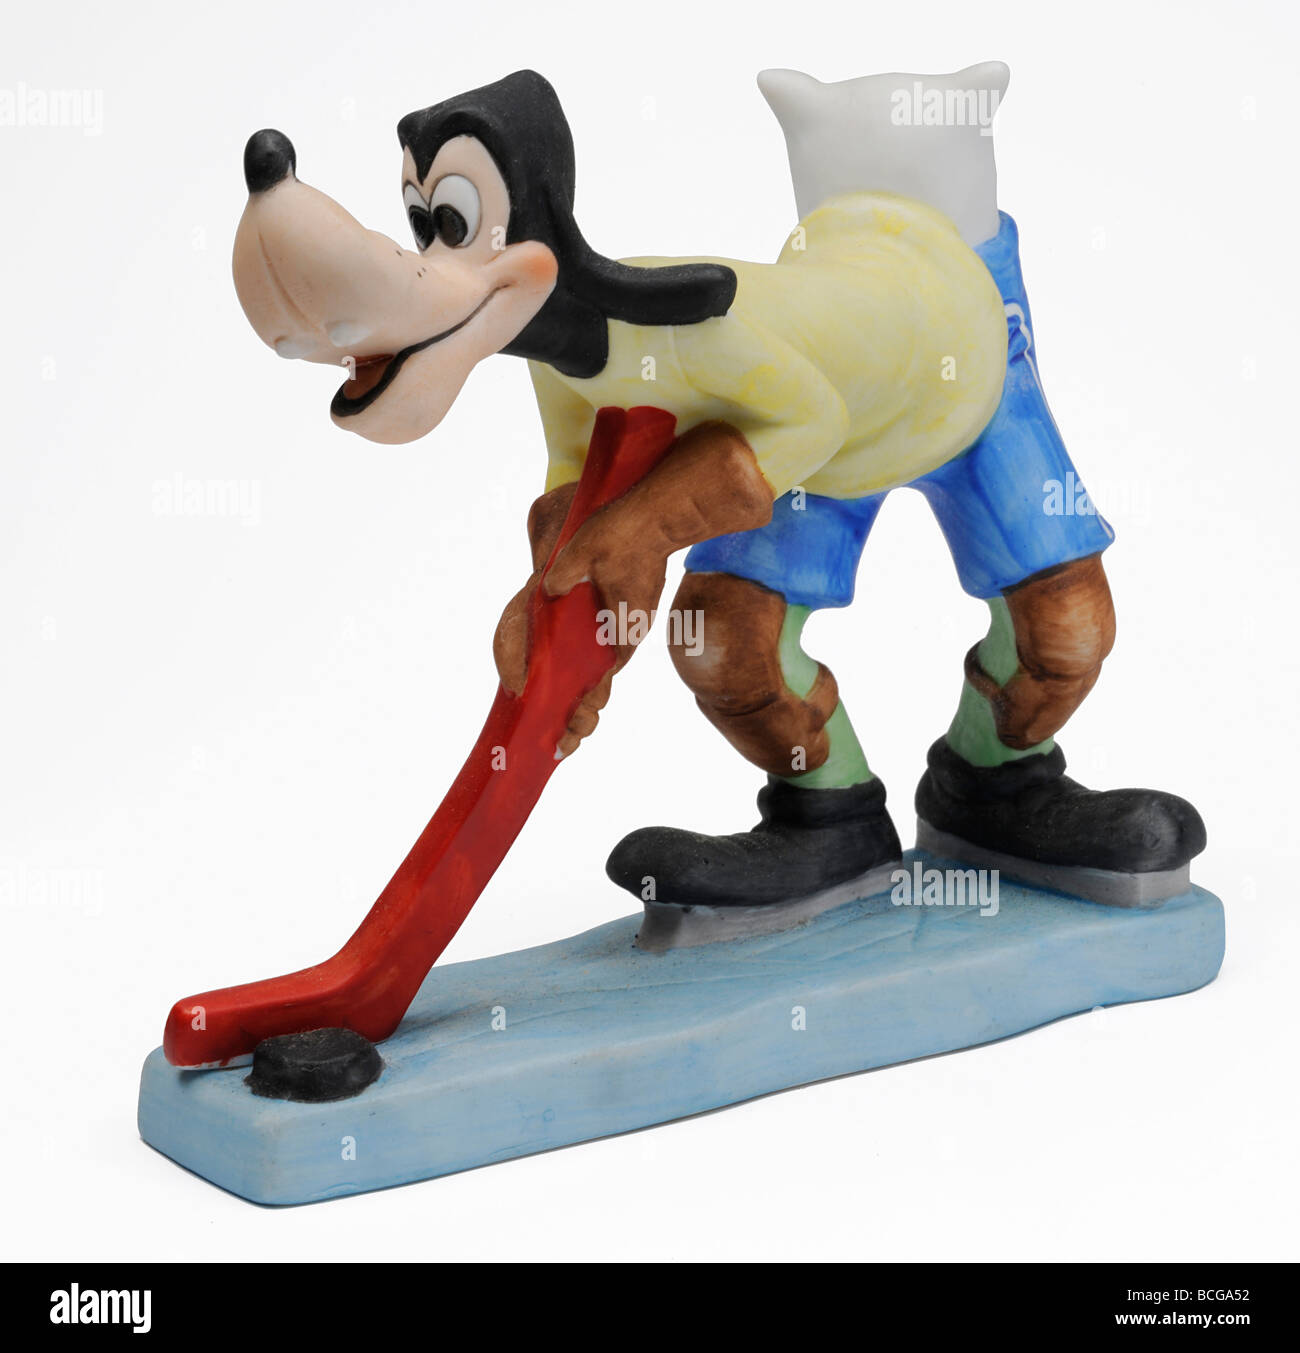 Pluto playing ice-hockey with pillow down the back of his shorts. - Stock Image